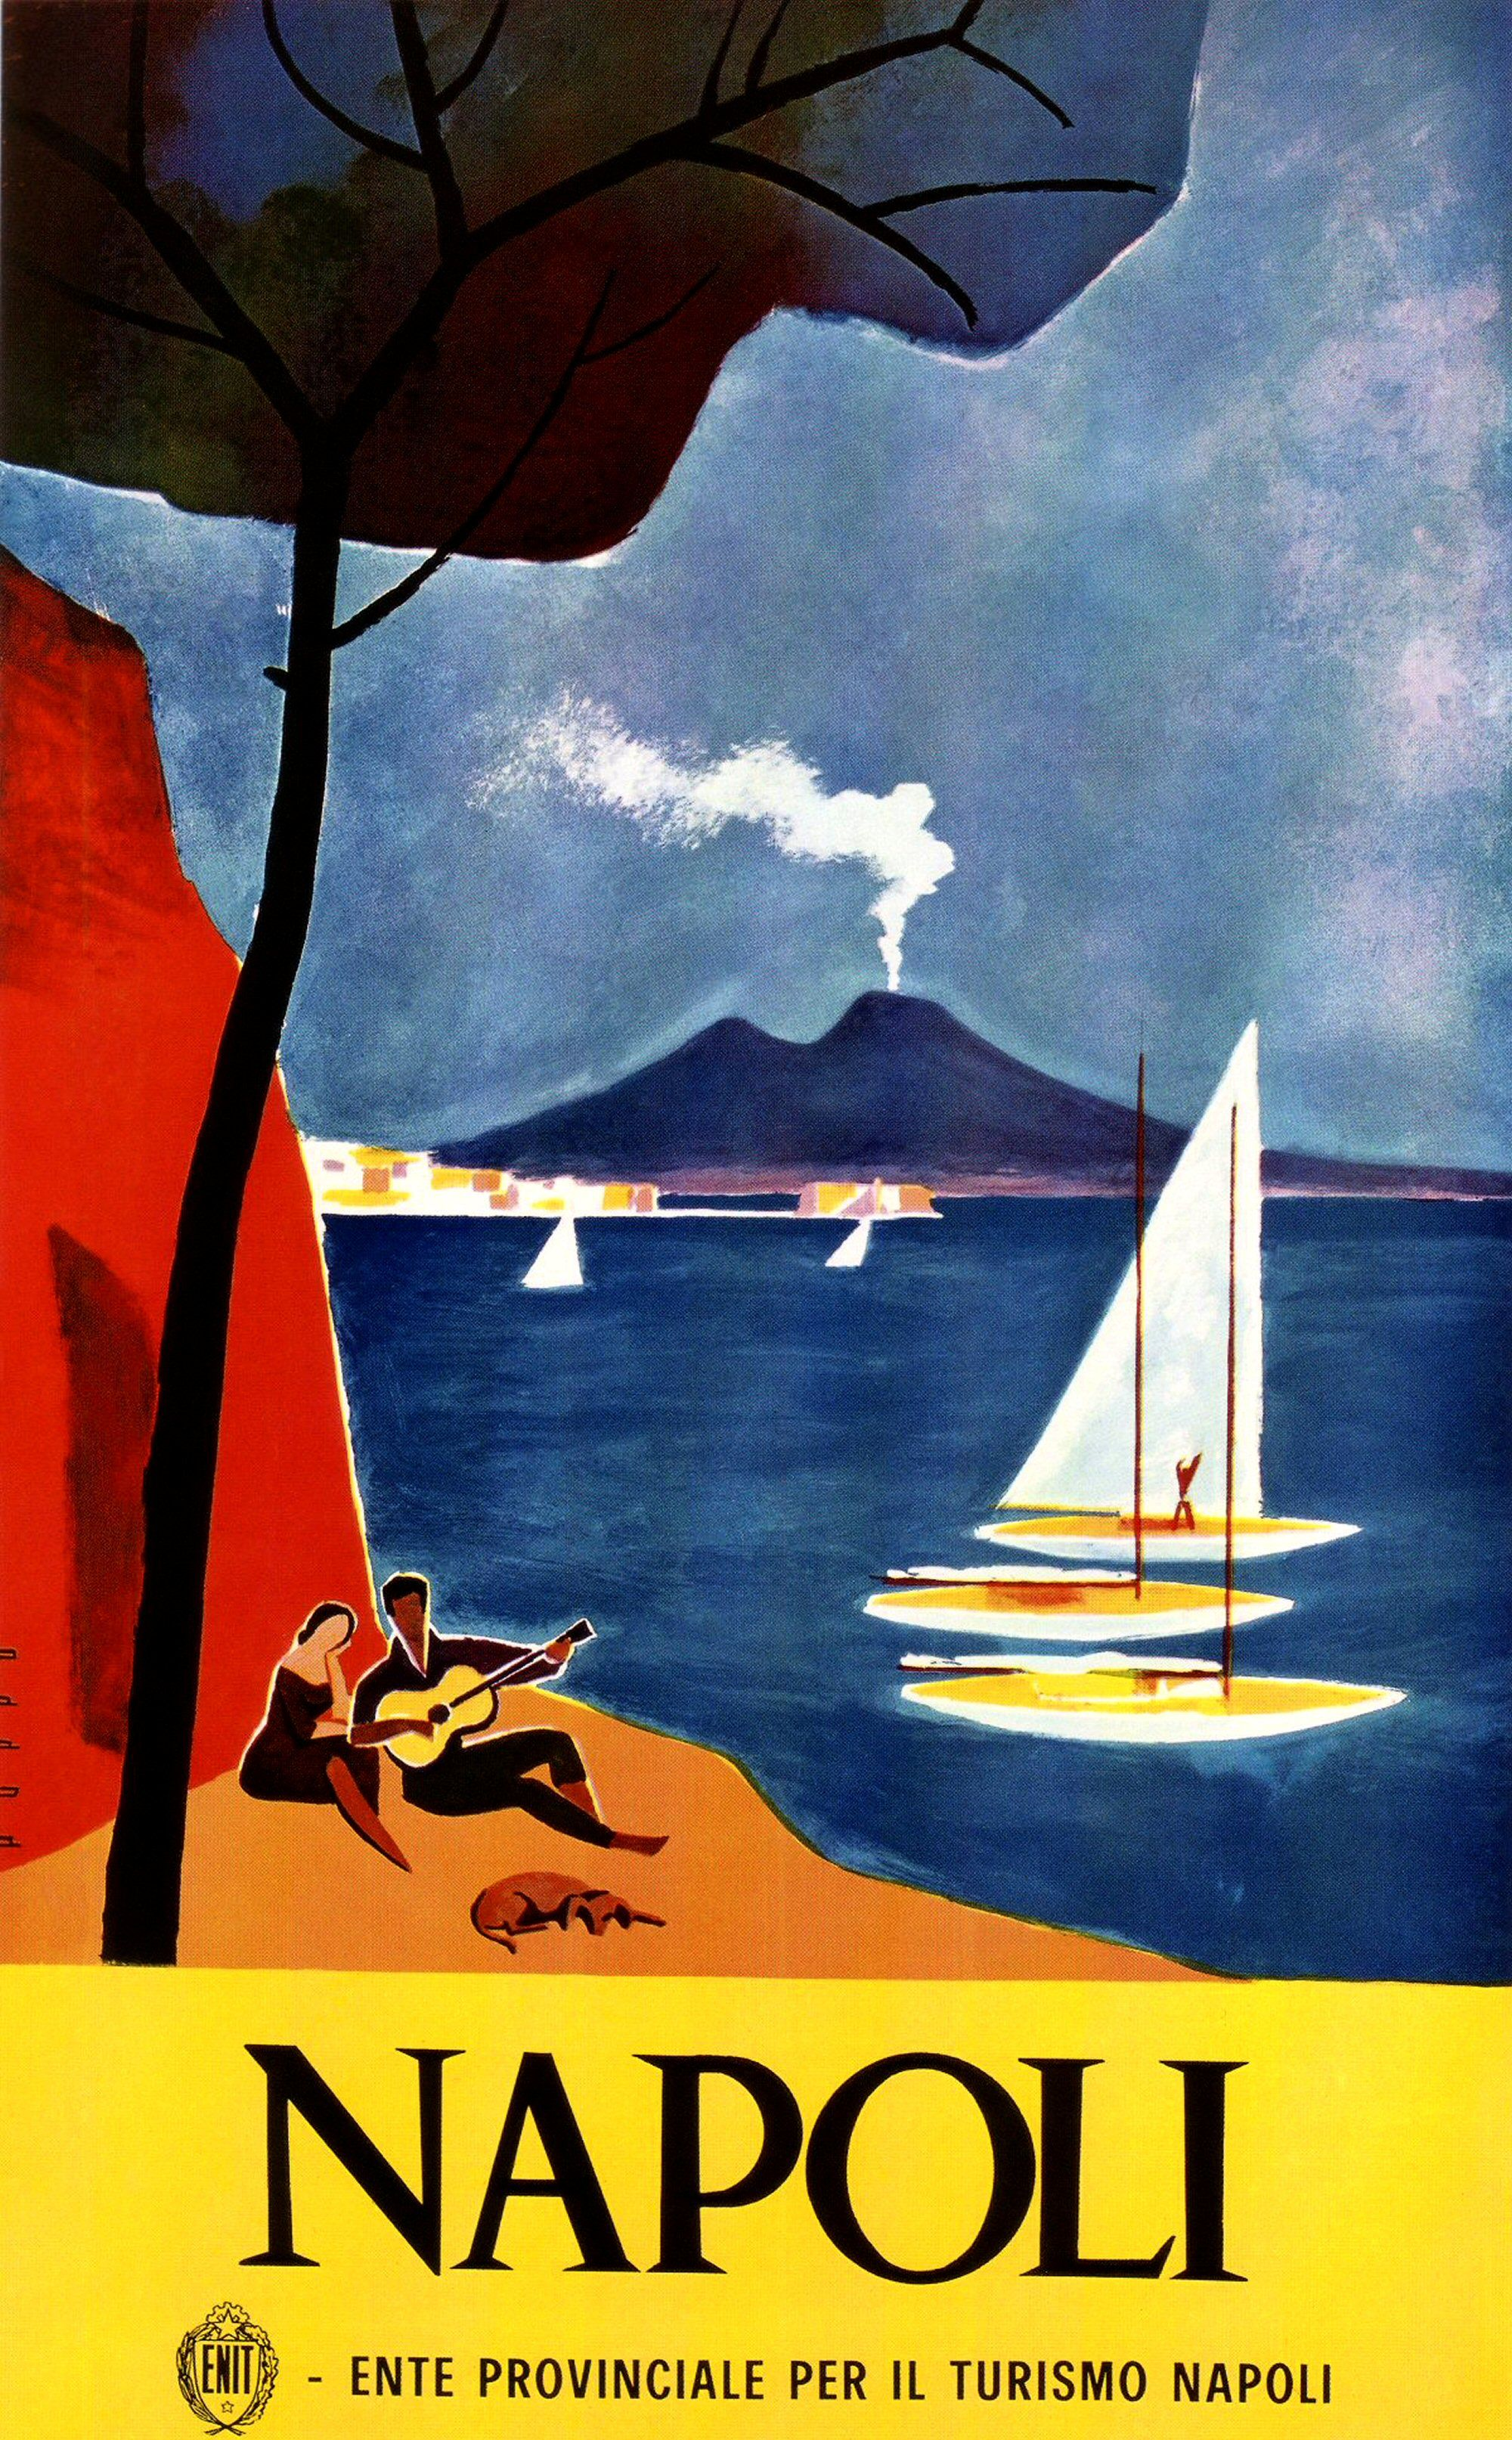 Vintage Poster Classics - Original French and Italian Posters